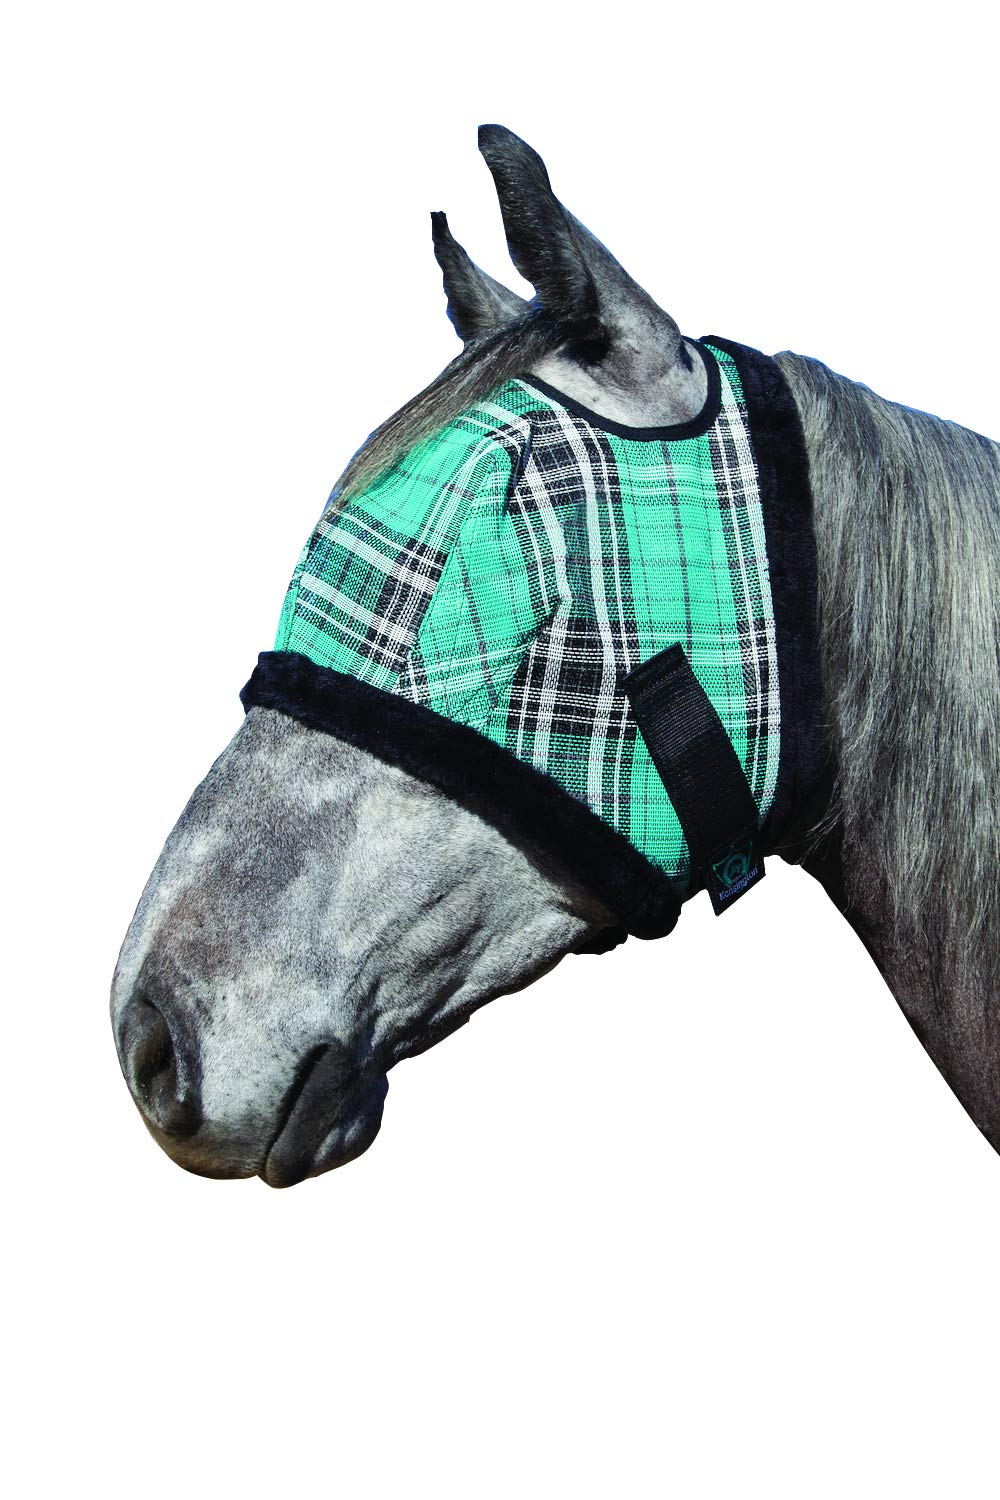 Kensington Fly Mask Fleece Trim for Horses - Protects Face, Eyes from Flies, UV Rays While Allowing Full Visibility - Breathable Non Heat Transferring, Perfect Year Round, (B, Black Ice)